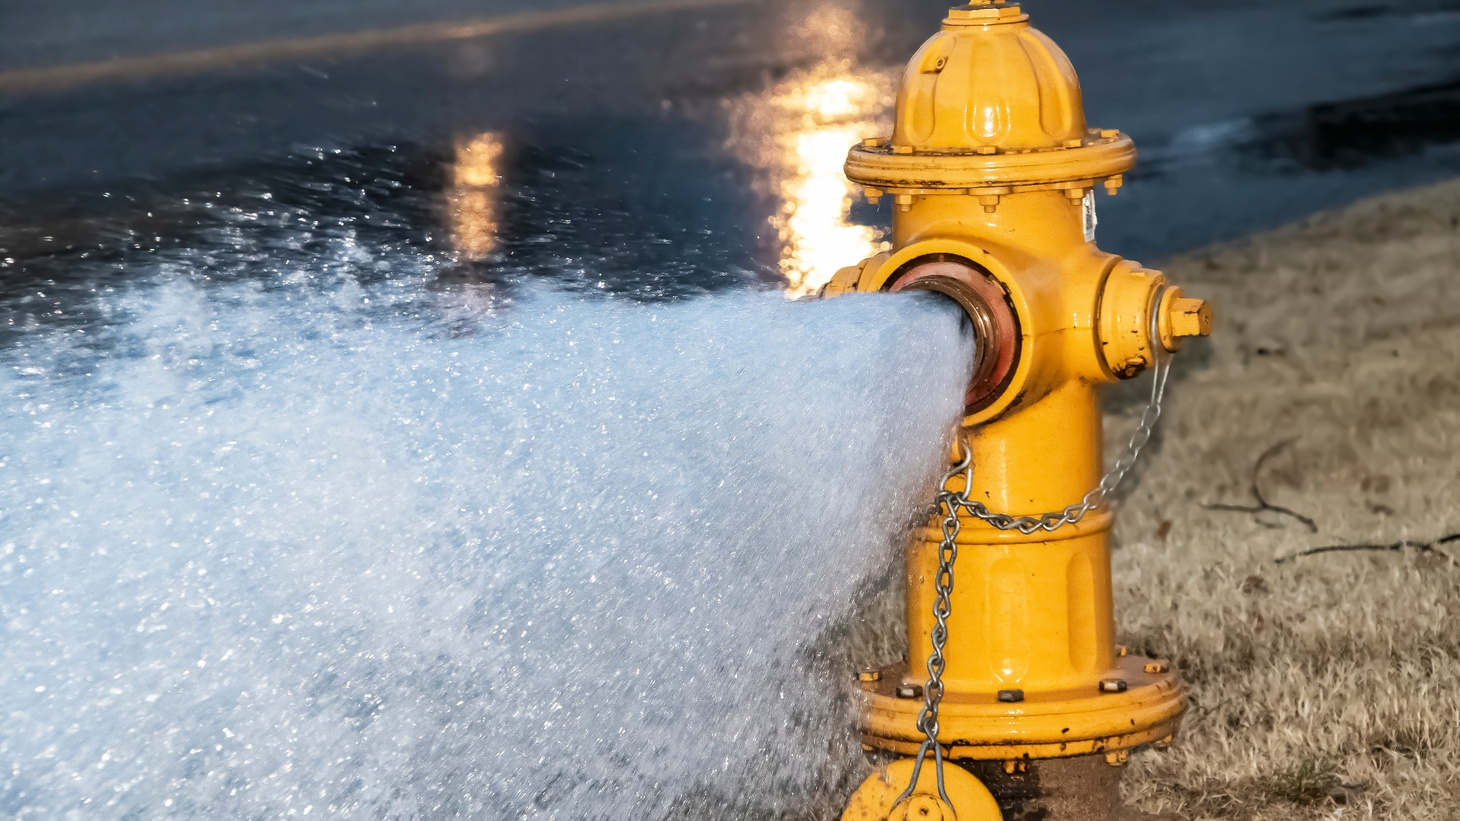 Thieves are resorting to stealing water from fire hydrants, lakes, and rivers.